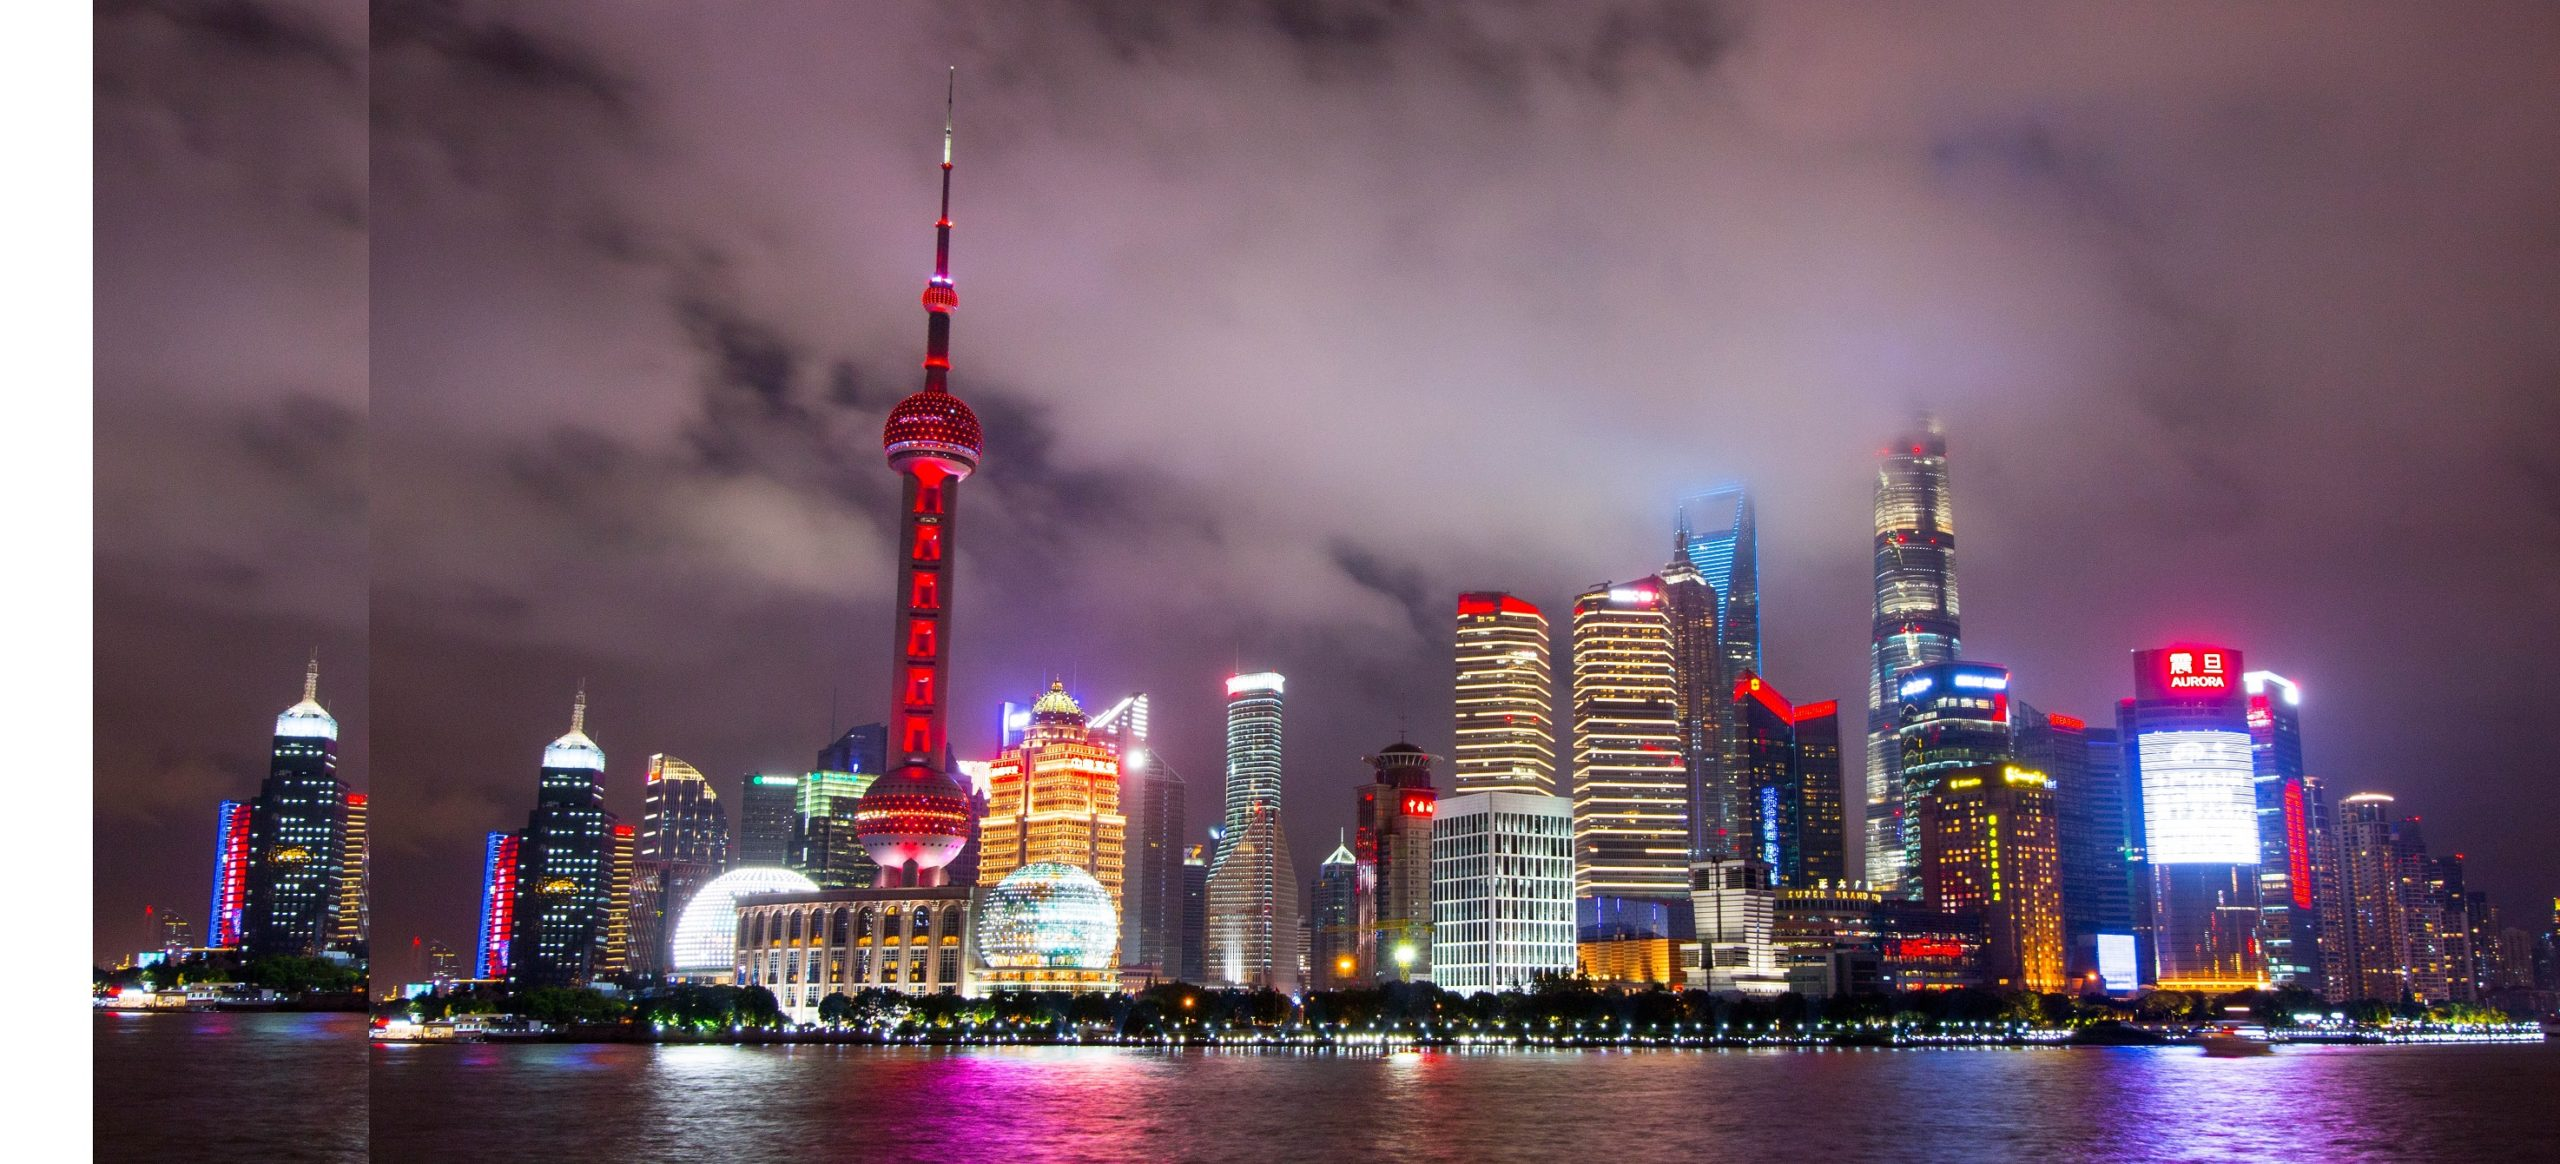 Shanghai the Bund skyline at night with lights and futuristic skyscrapers